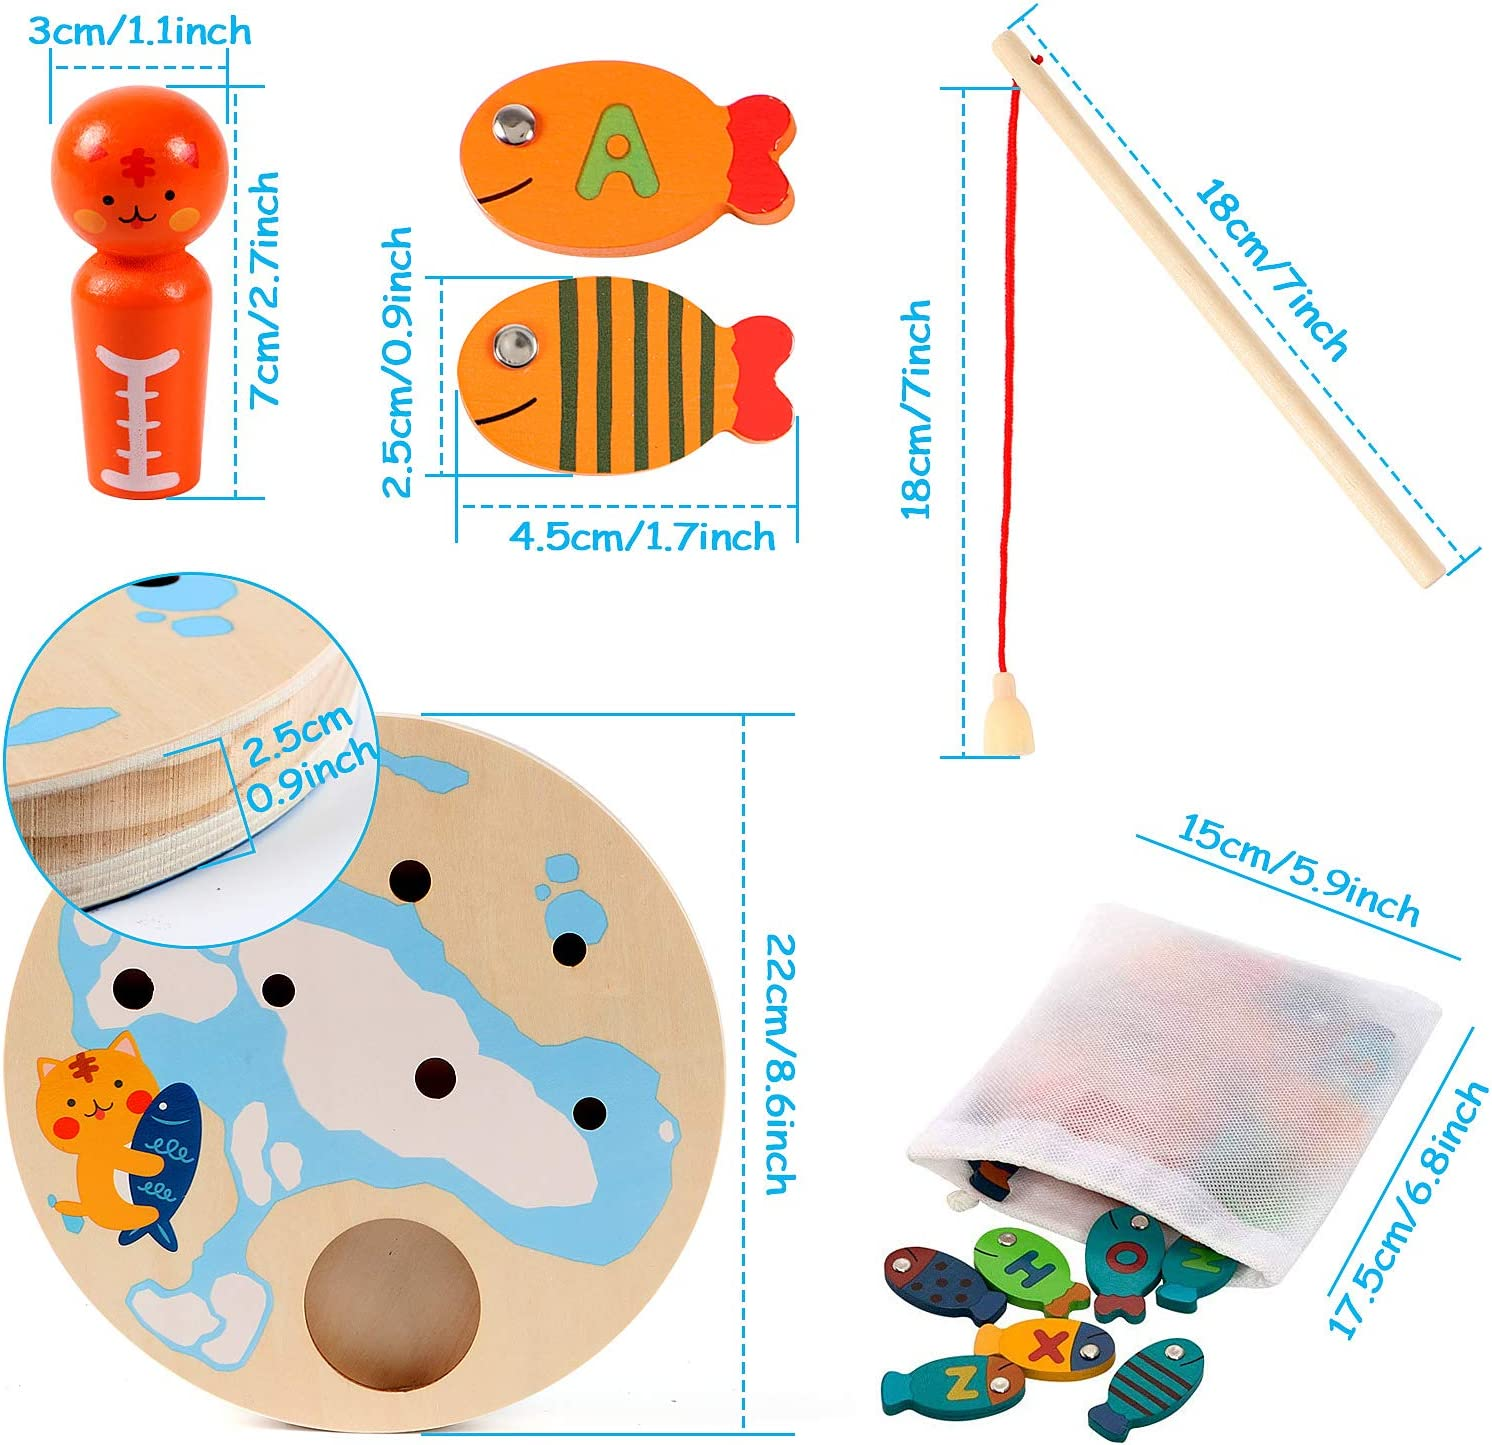 Lewo 2 In 1 Large Fishing Game Wooden Magnetic Alphabet Letter Fishing Toys for 3 4 5 Year Old Girls Boys Kids Toddles Christmas Birthday Learning Educational Toys with Magnet Poles